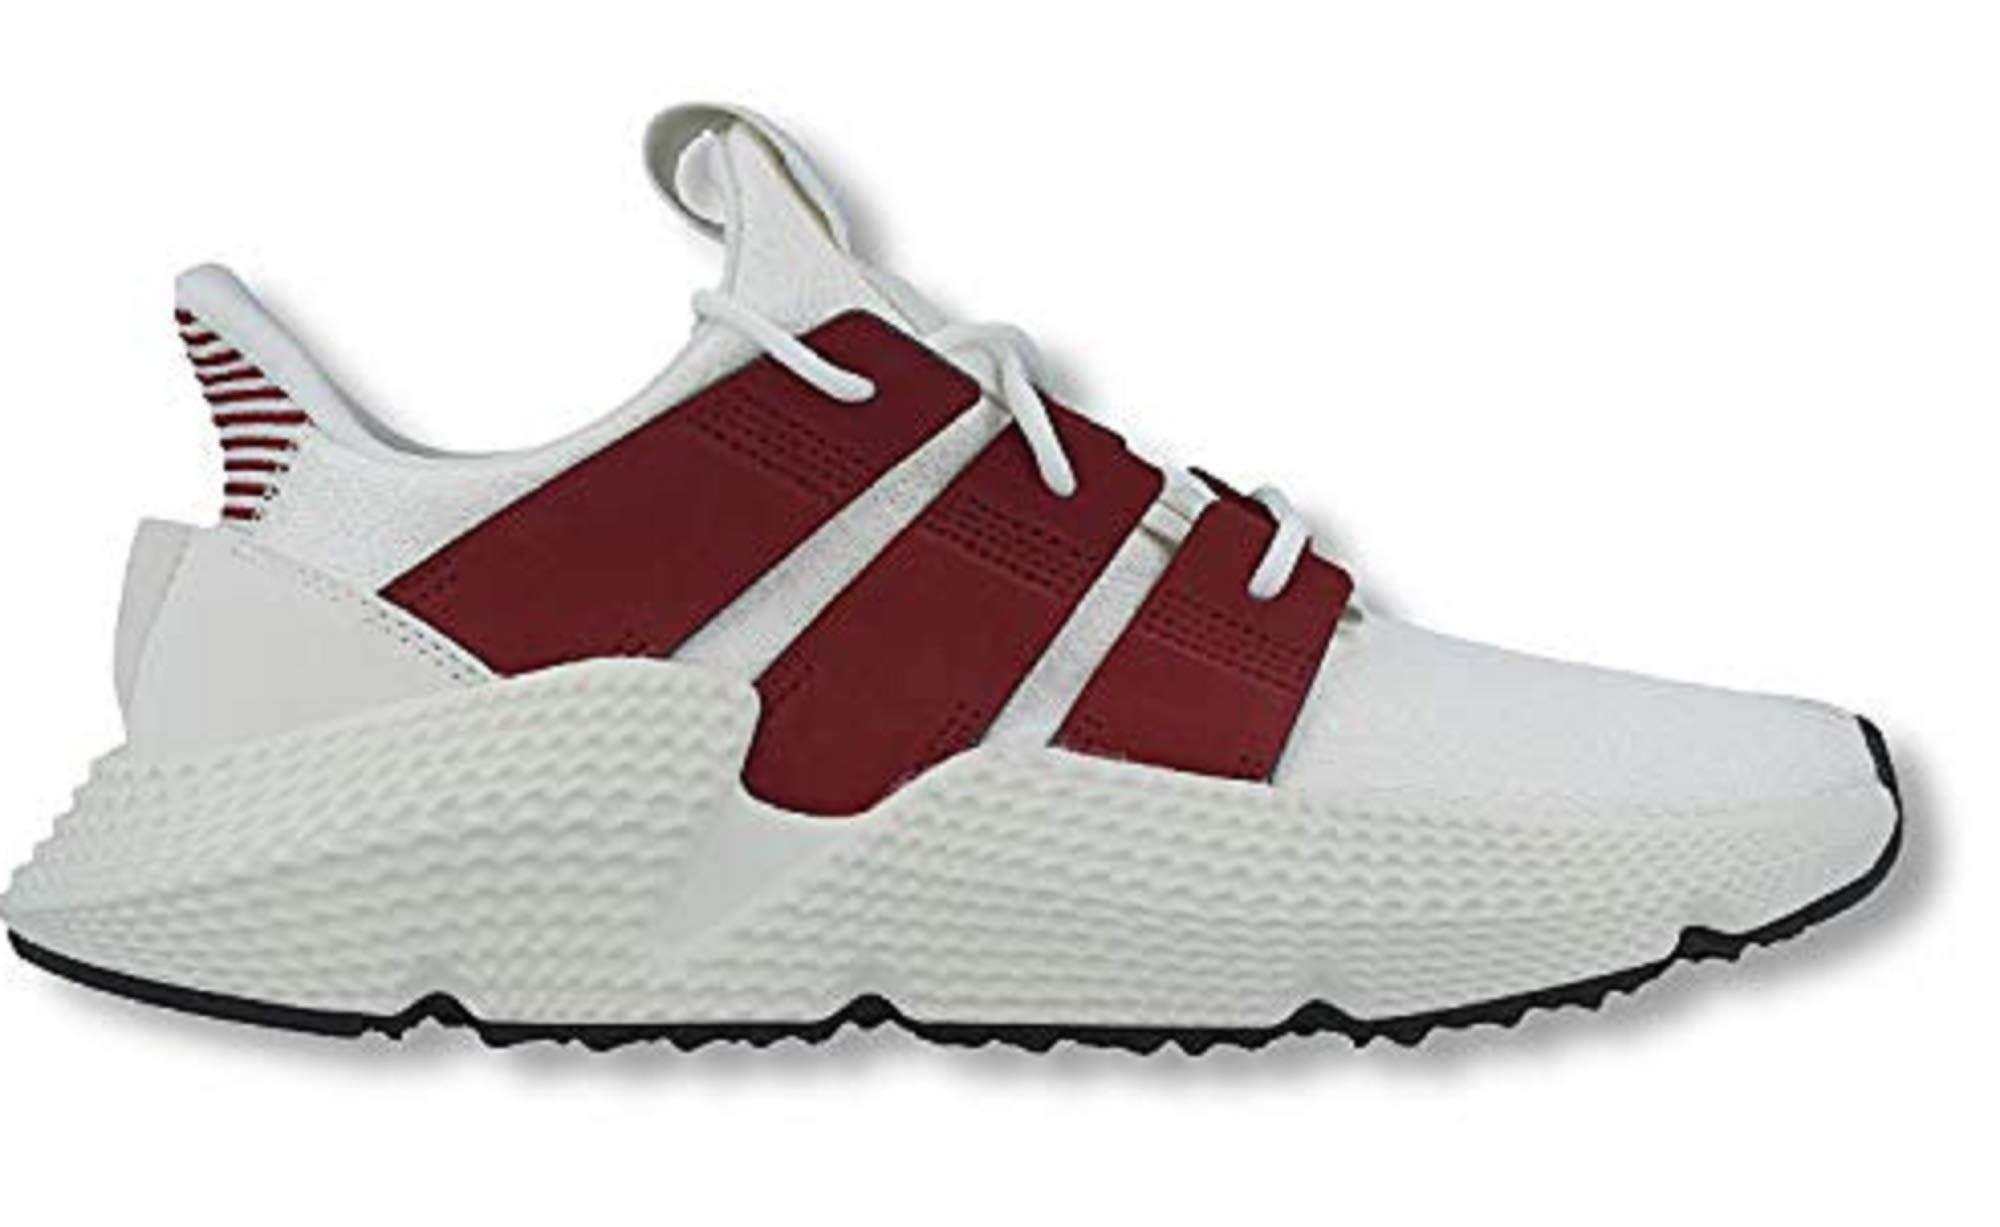 Prophere White/Maroon D96658